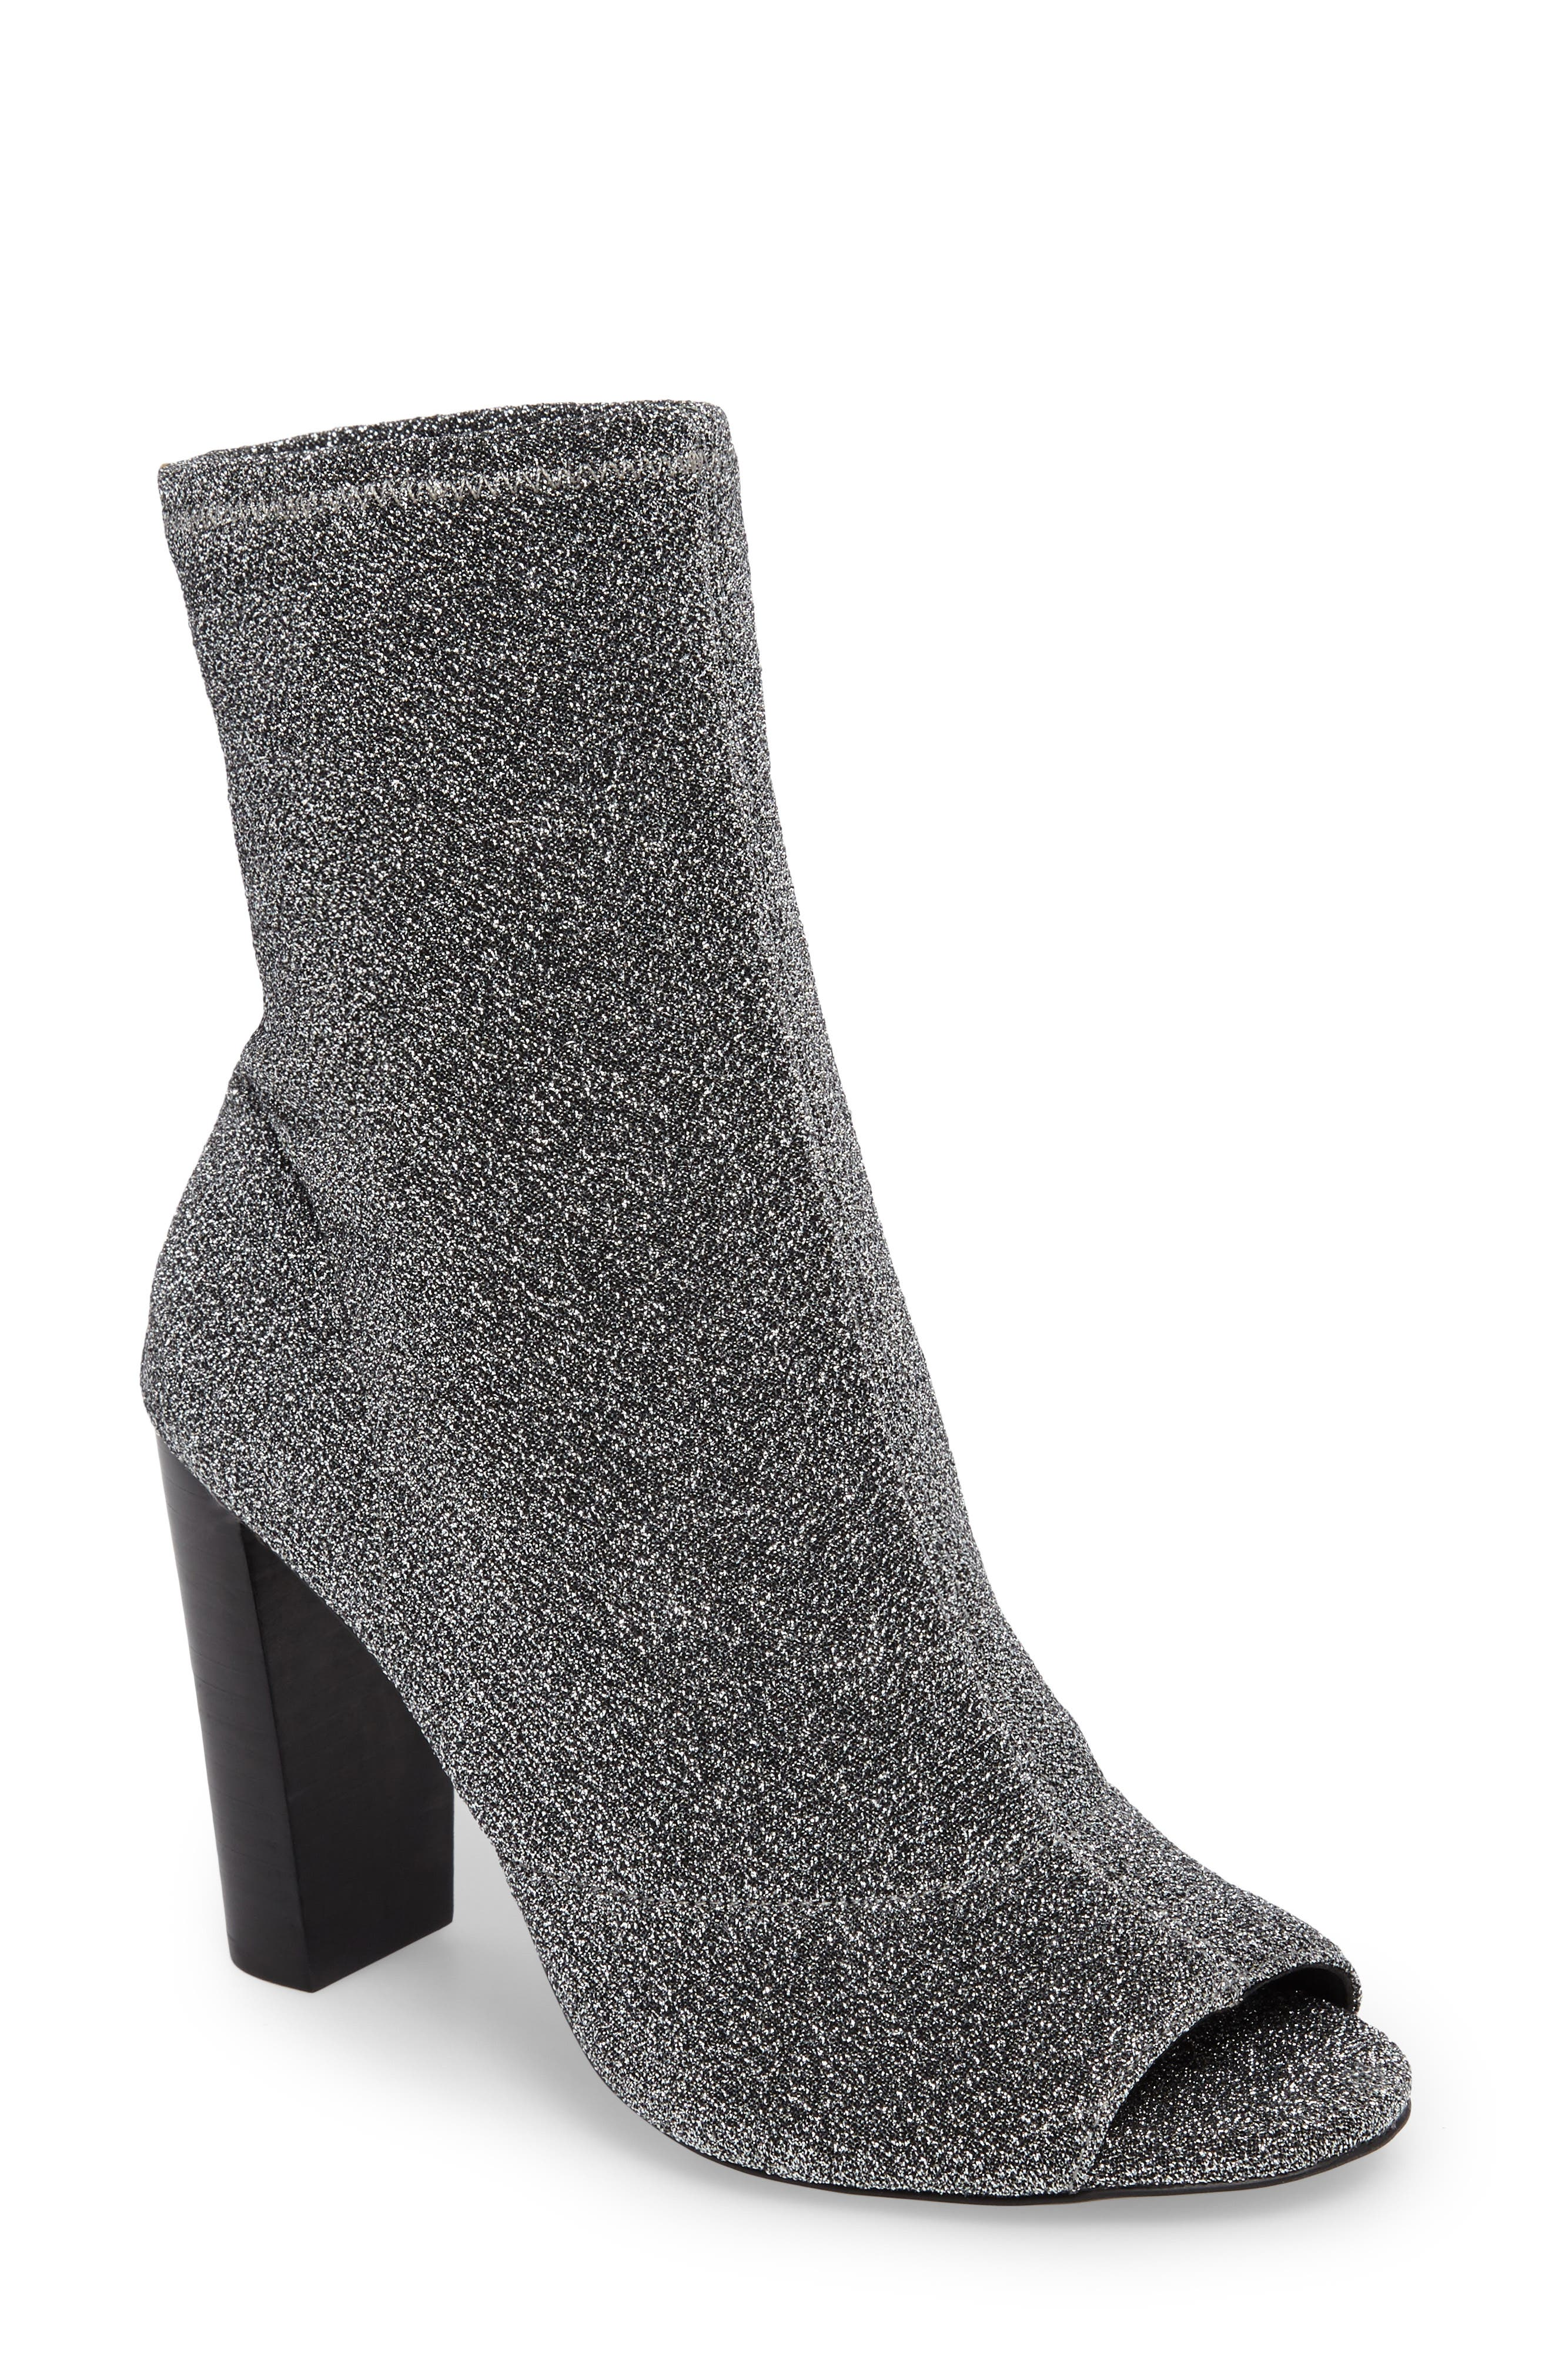 Elara Open-Toe Bootie,                             Main thumbnail 1, color,                             Gunmetal